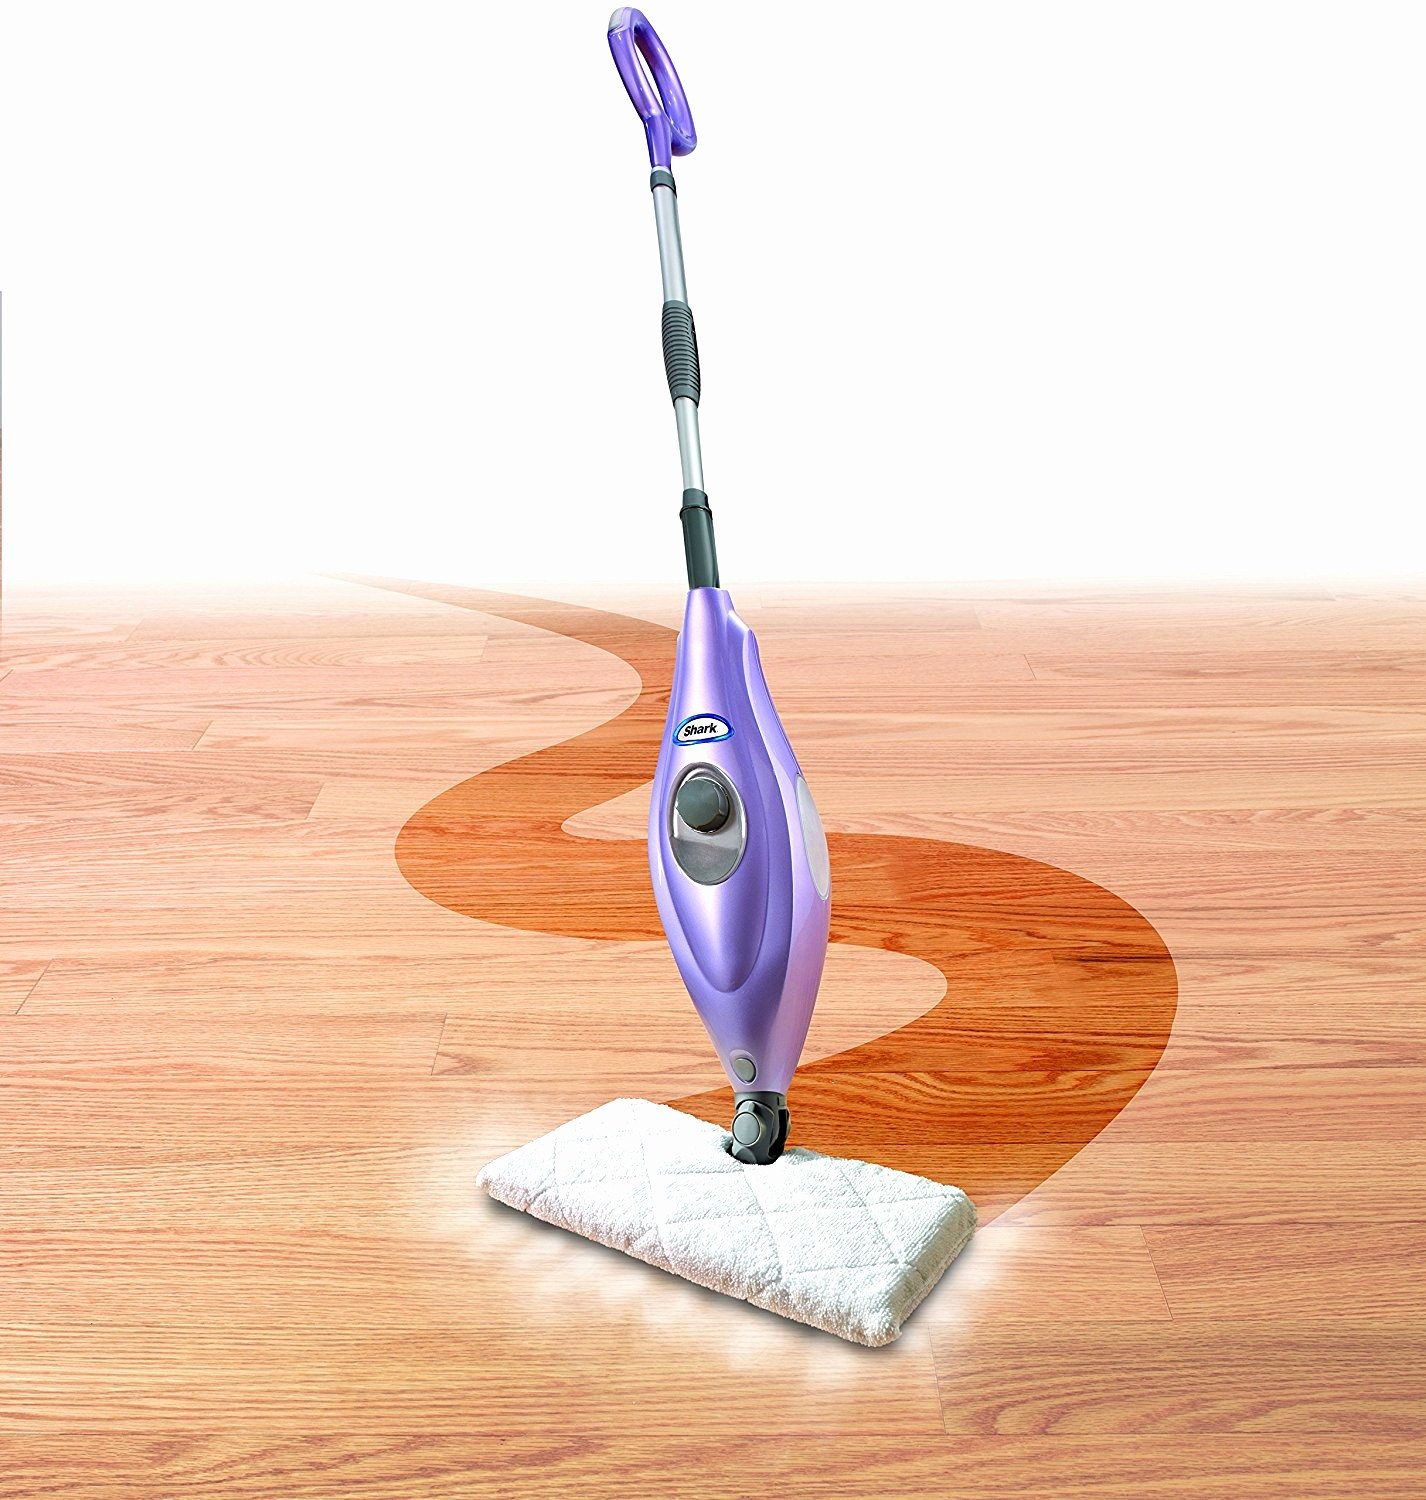 hardwood floor steam cleaner shark of 19 awesome steam clean hardwood floors images dizpos com inside steam clean hardwood floors inspirational 50 luxury bona hardwood floor graphics 50 s gallery of 19